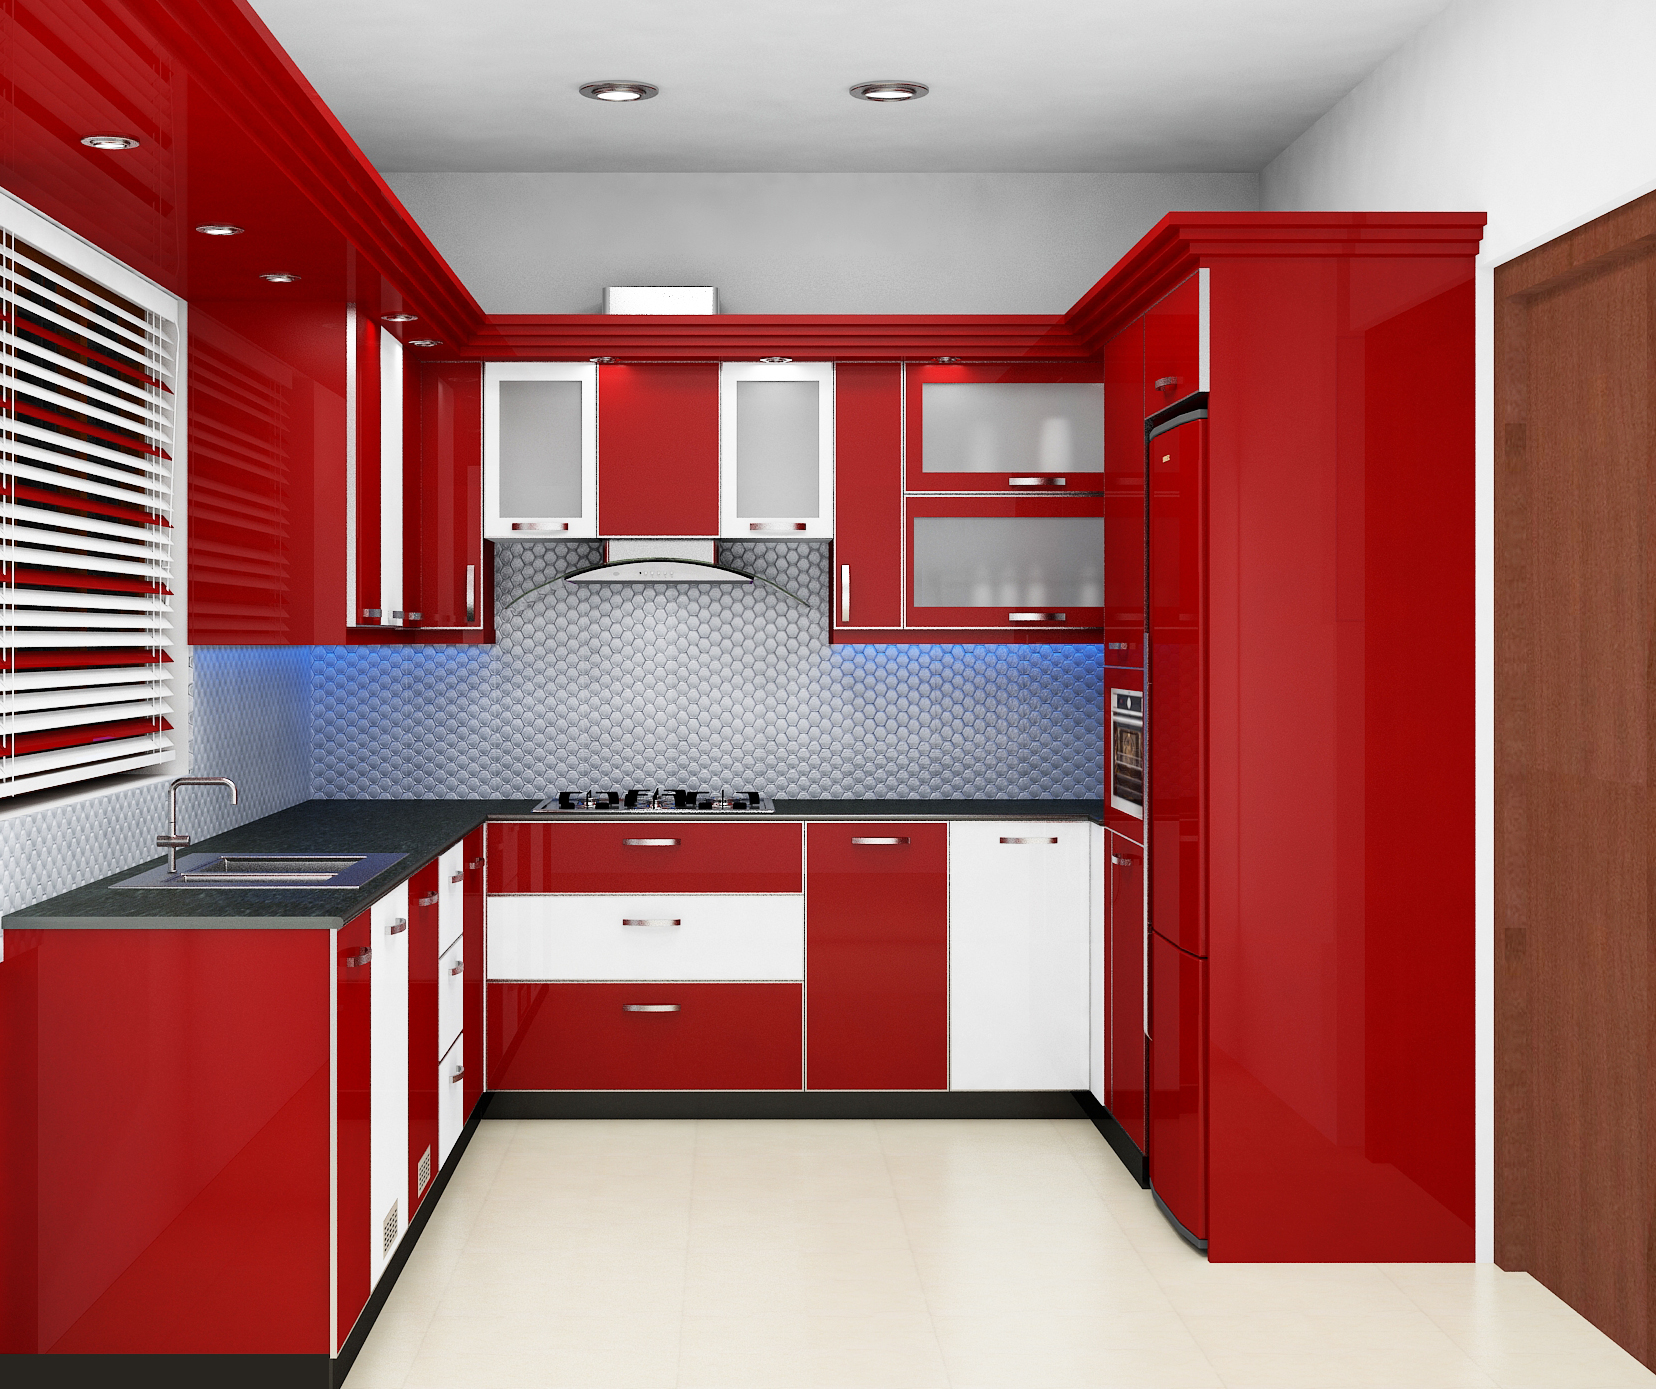 House Inside Design: Exemplary And Amazing Modular Kitchen Home Interior Design